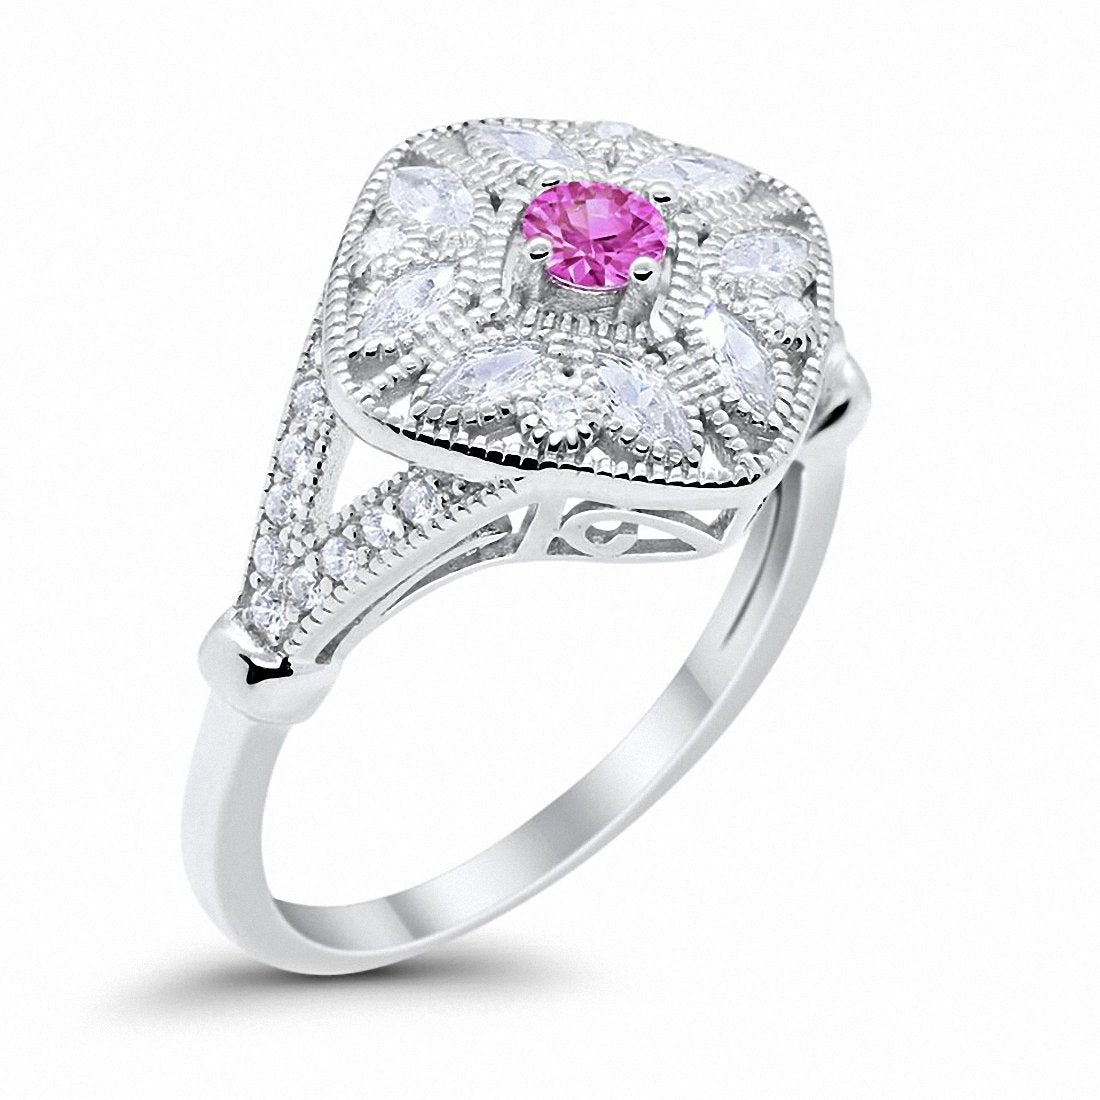 Art Deco Ring Marquise Filigree Simulated Pink CZ 925 Sterling Silver